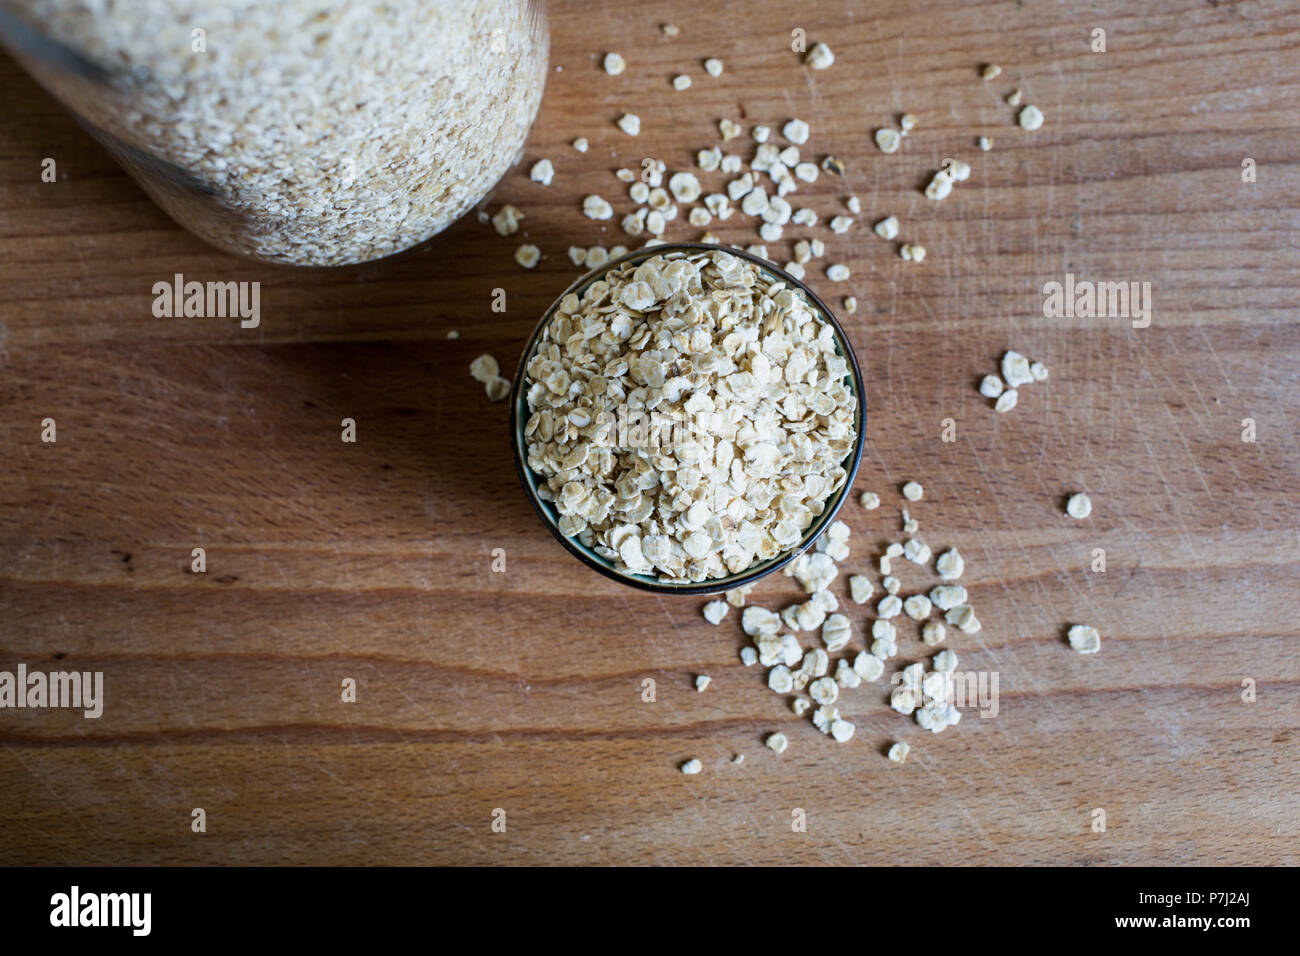 fibre source natural oat flakes for whole food diet on wooden table - Stock Image